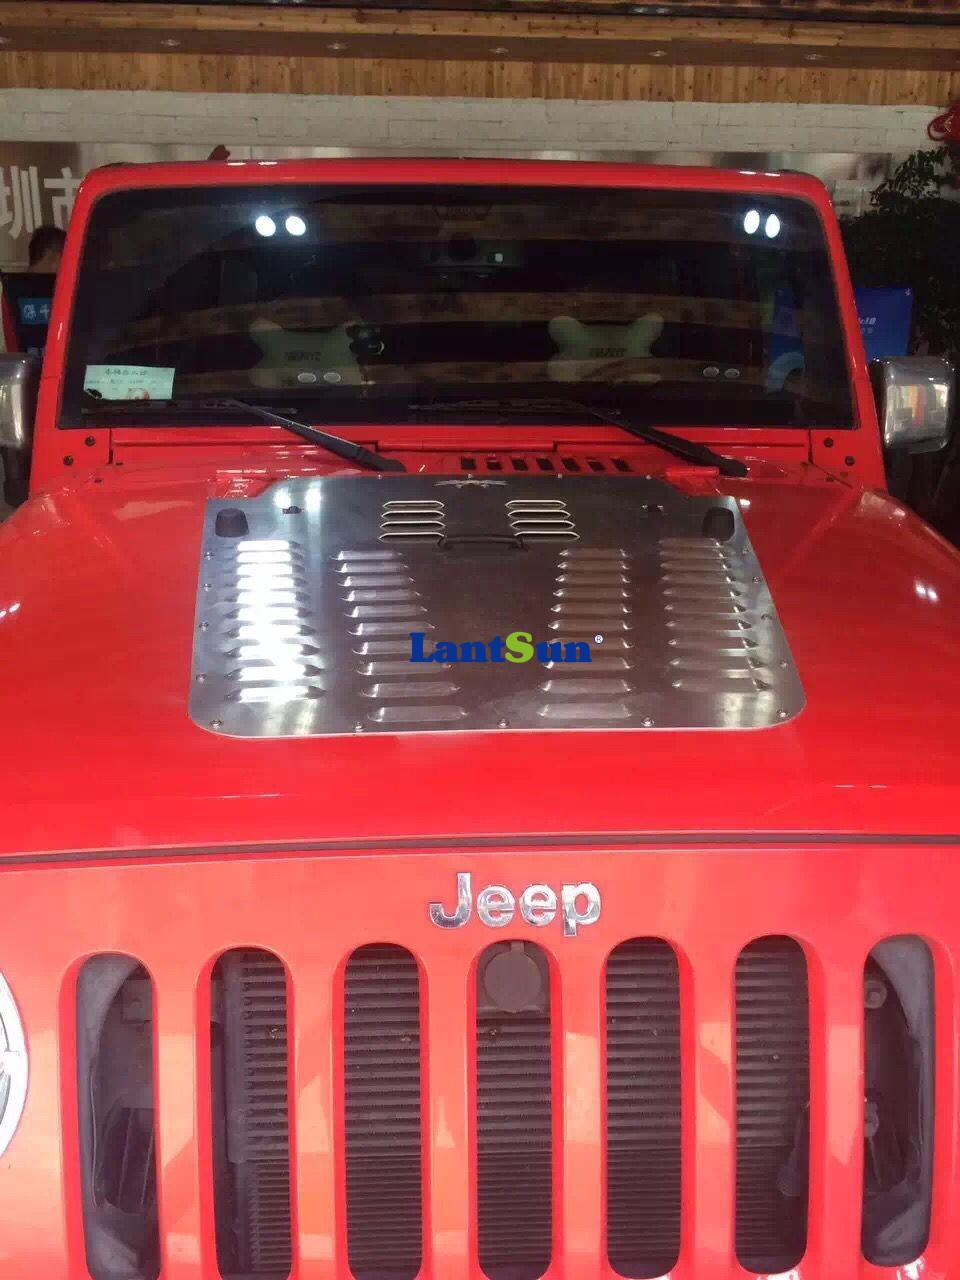 Powder-coated silver & black steel Hood Louver for Jeep Wrangler